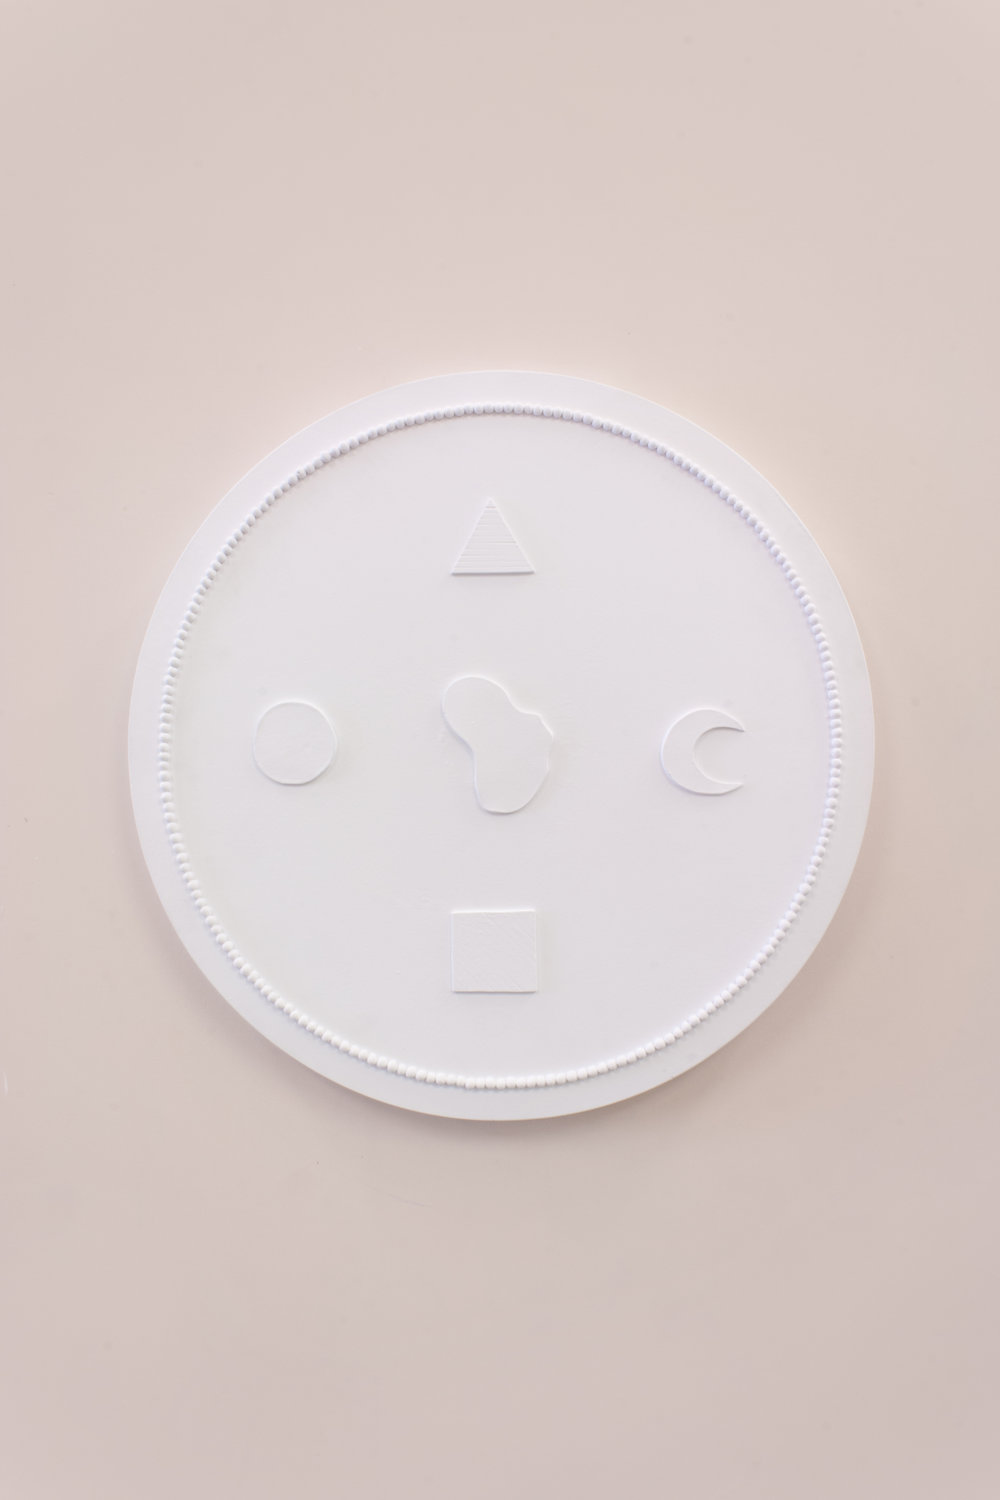 walac. design studio ceiling medallion